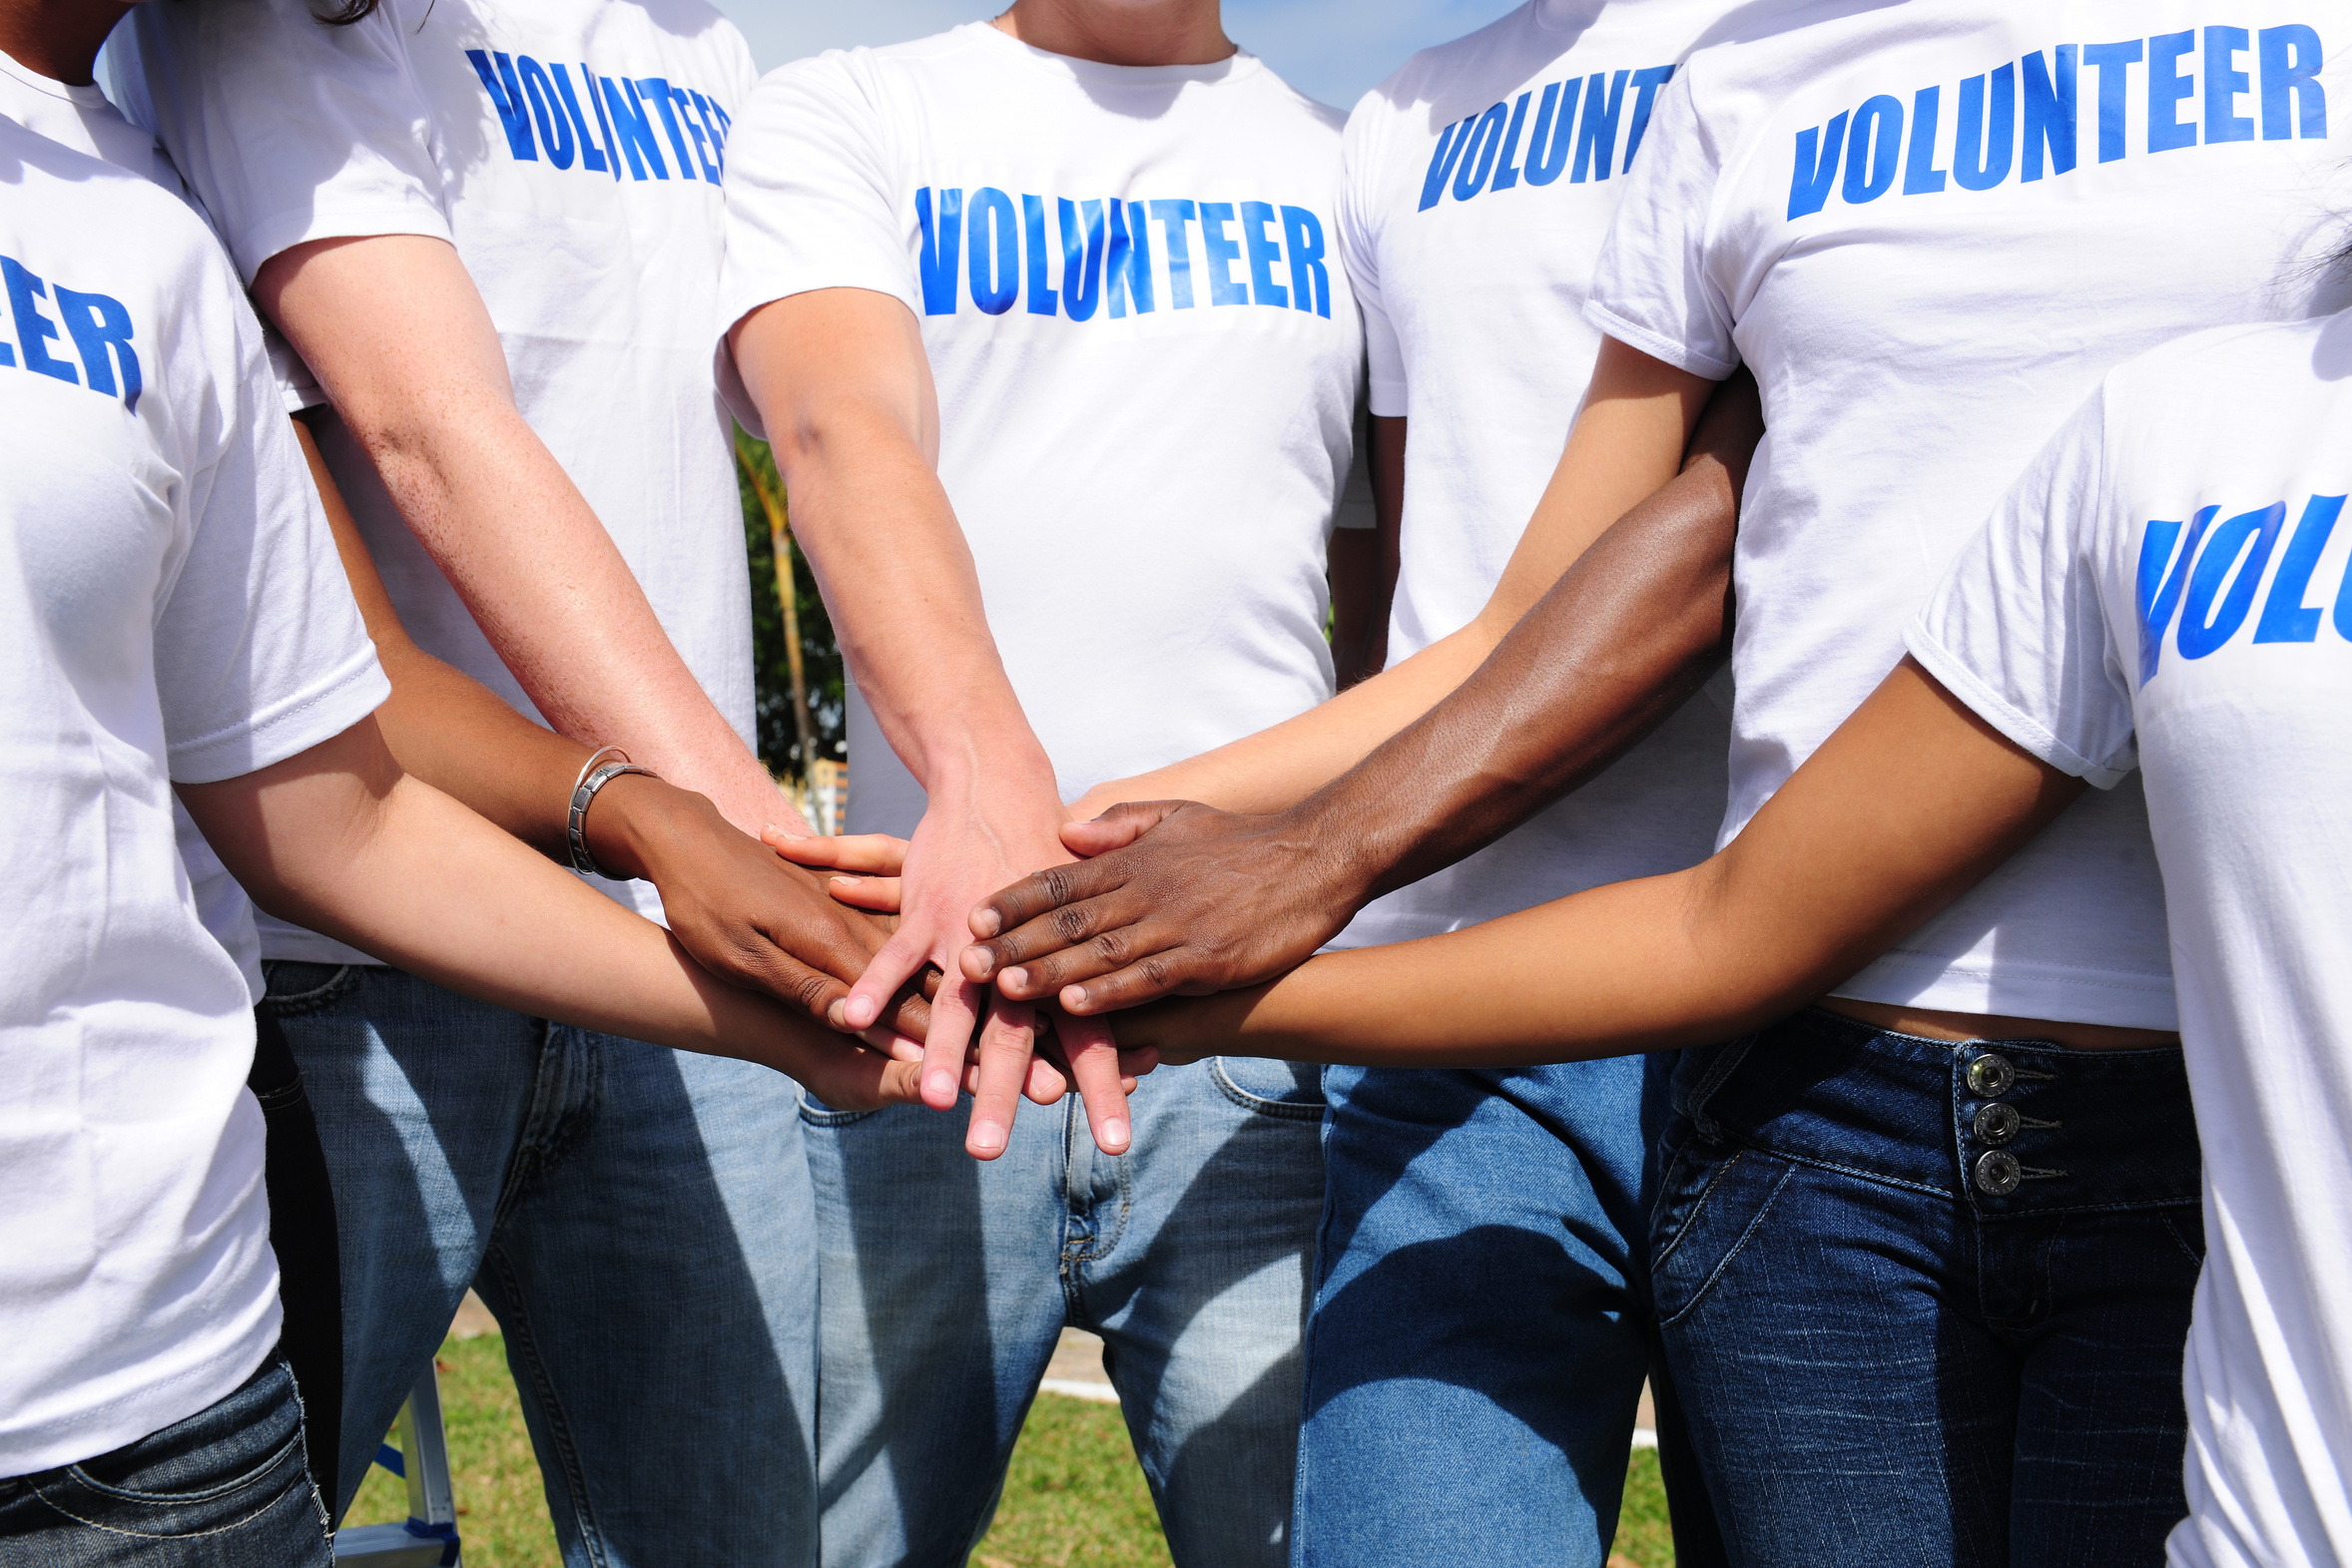 Youth who volunteer are more likely to be employed